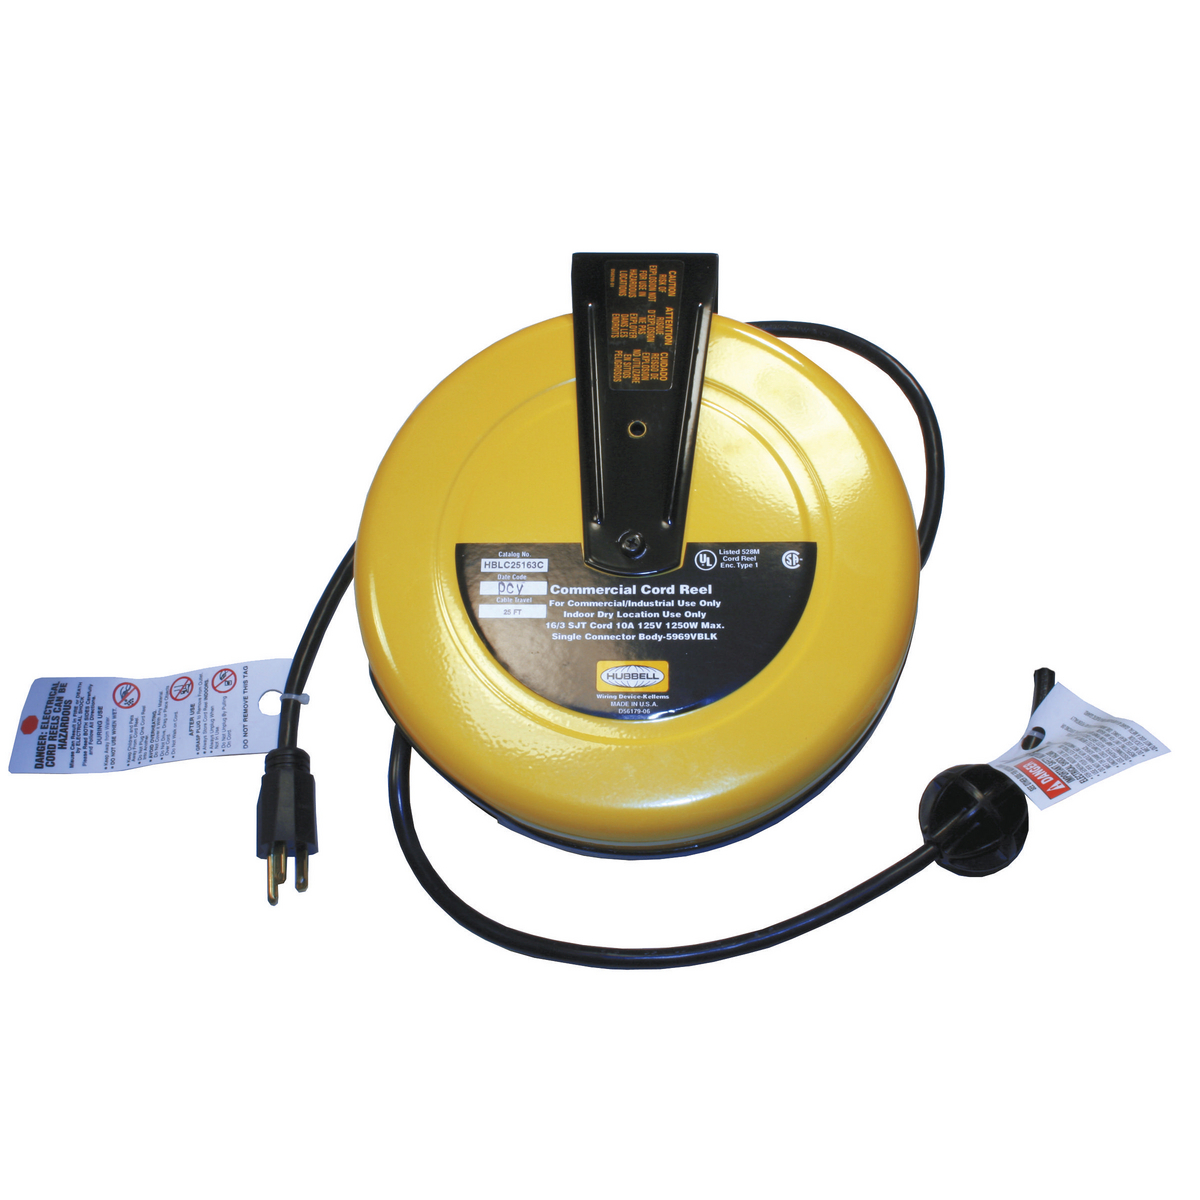 Hubbell HBLC25163 10 Amp 125 Volt 25 Foot Yellow Commercial Cord Reel